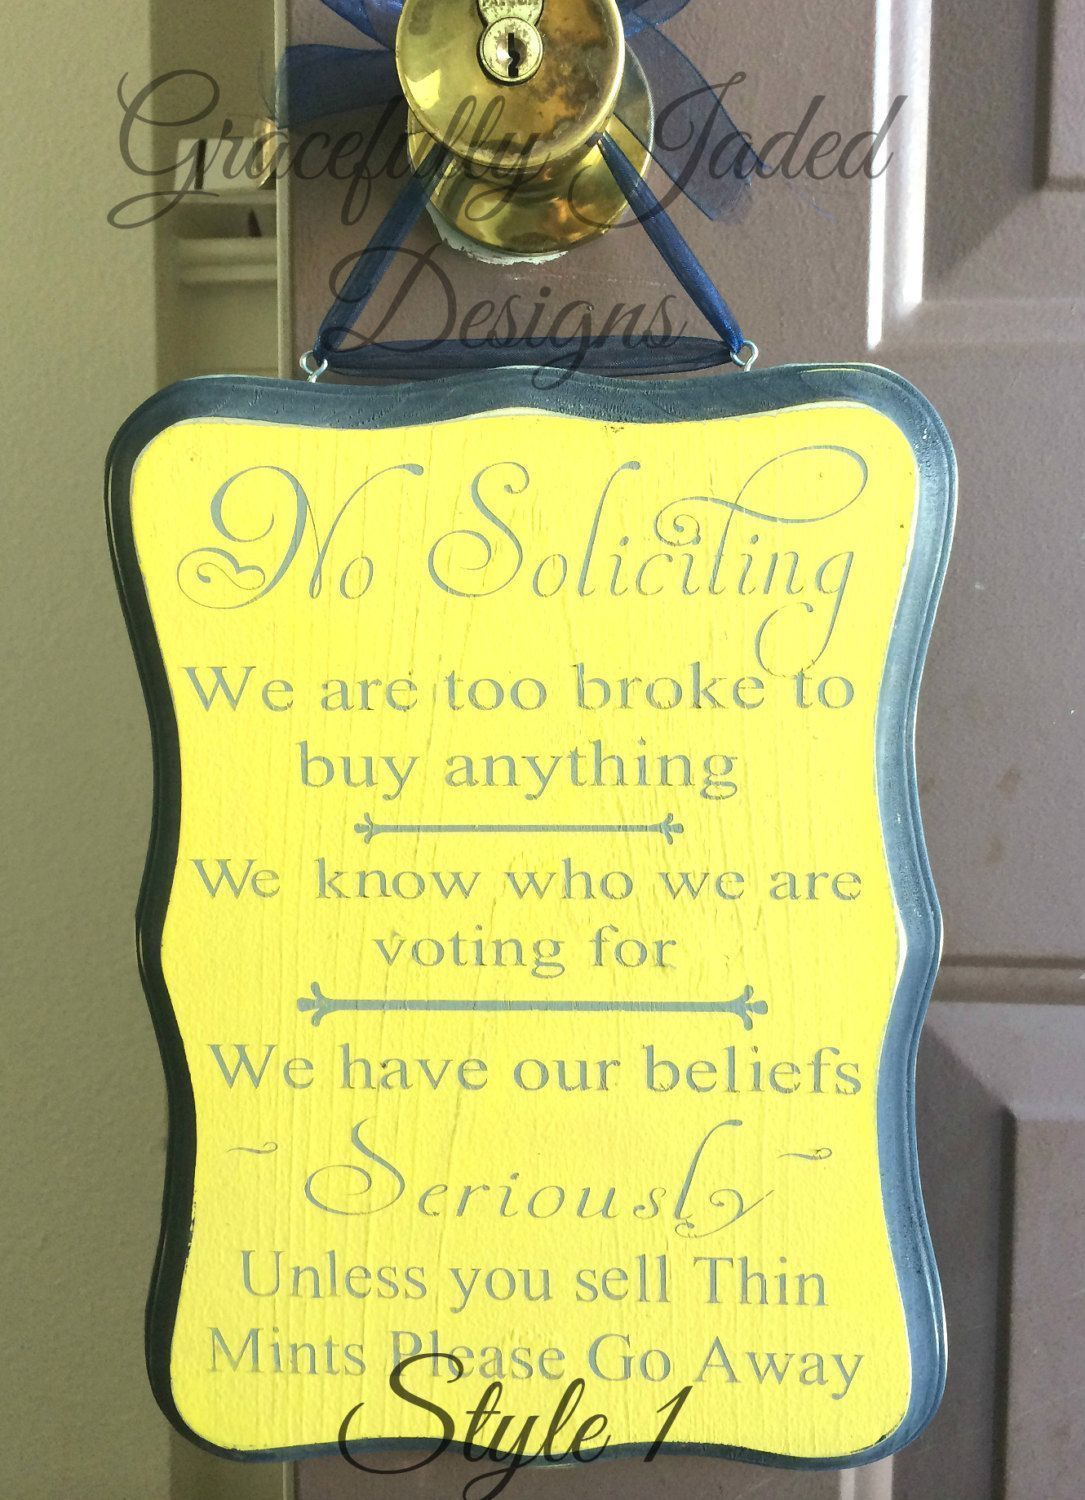 No Soliciting Sign Funny No Soliciting Sign Custom No Soliciting Sign Hand Painted No Soliciting Sign Entry Way Sign (25.00 USD) by gracefullyjaded #nosolicitingsignfunny No Soliciting Sign Funny No Soliciting Sign Custom No Soliciting Sign Hand Painted No Soliciting Sign Entry Way Sign (25.00 USD) by gracefullyjaded #nosolicitingsignfunny No Soliciting Sign Funny No Soliciting Sign Custom No Soliciting Sign Hand Painted No Soliciting Sign Entry Way Sign (25.00 USD) by gracefullyjaded #nosolicit #nosolicitingsignfunny